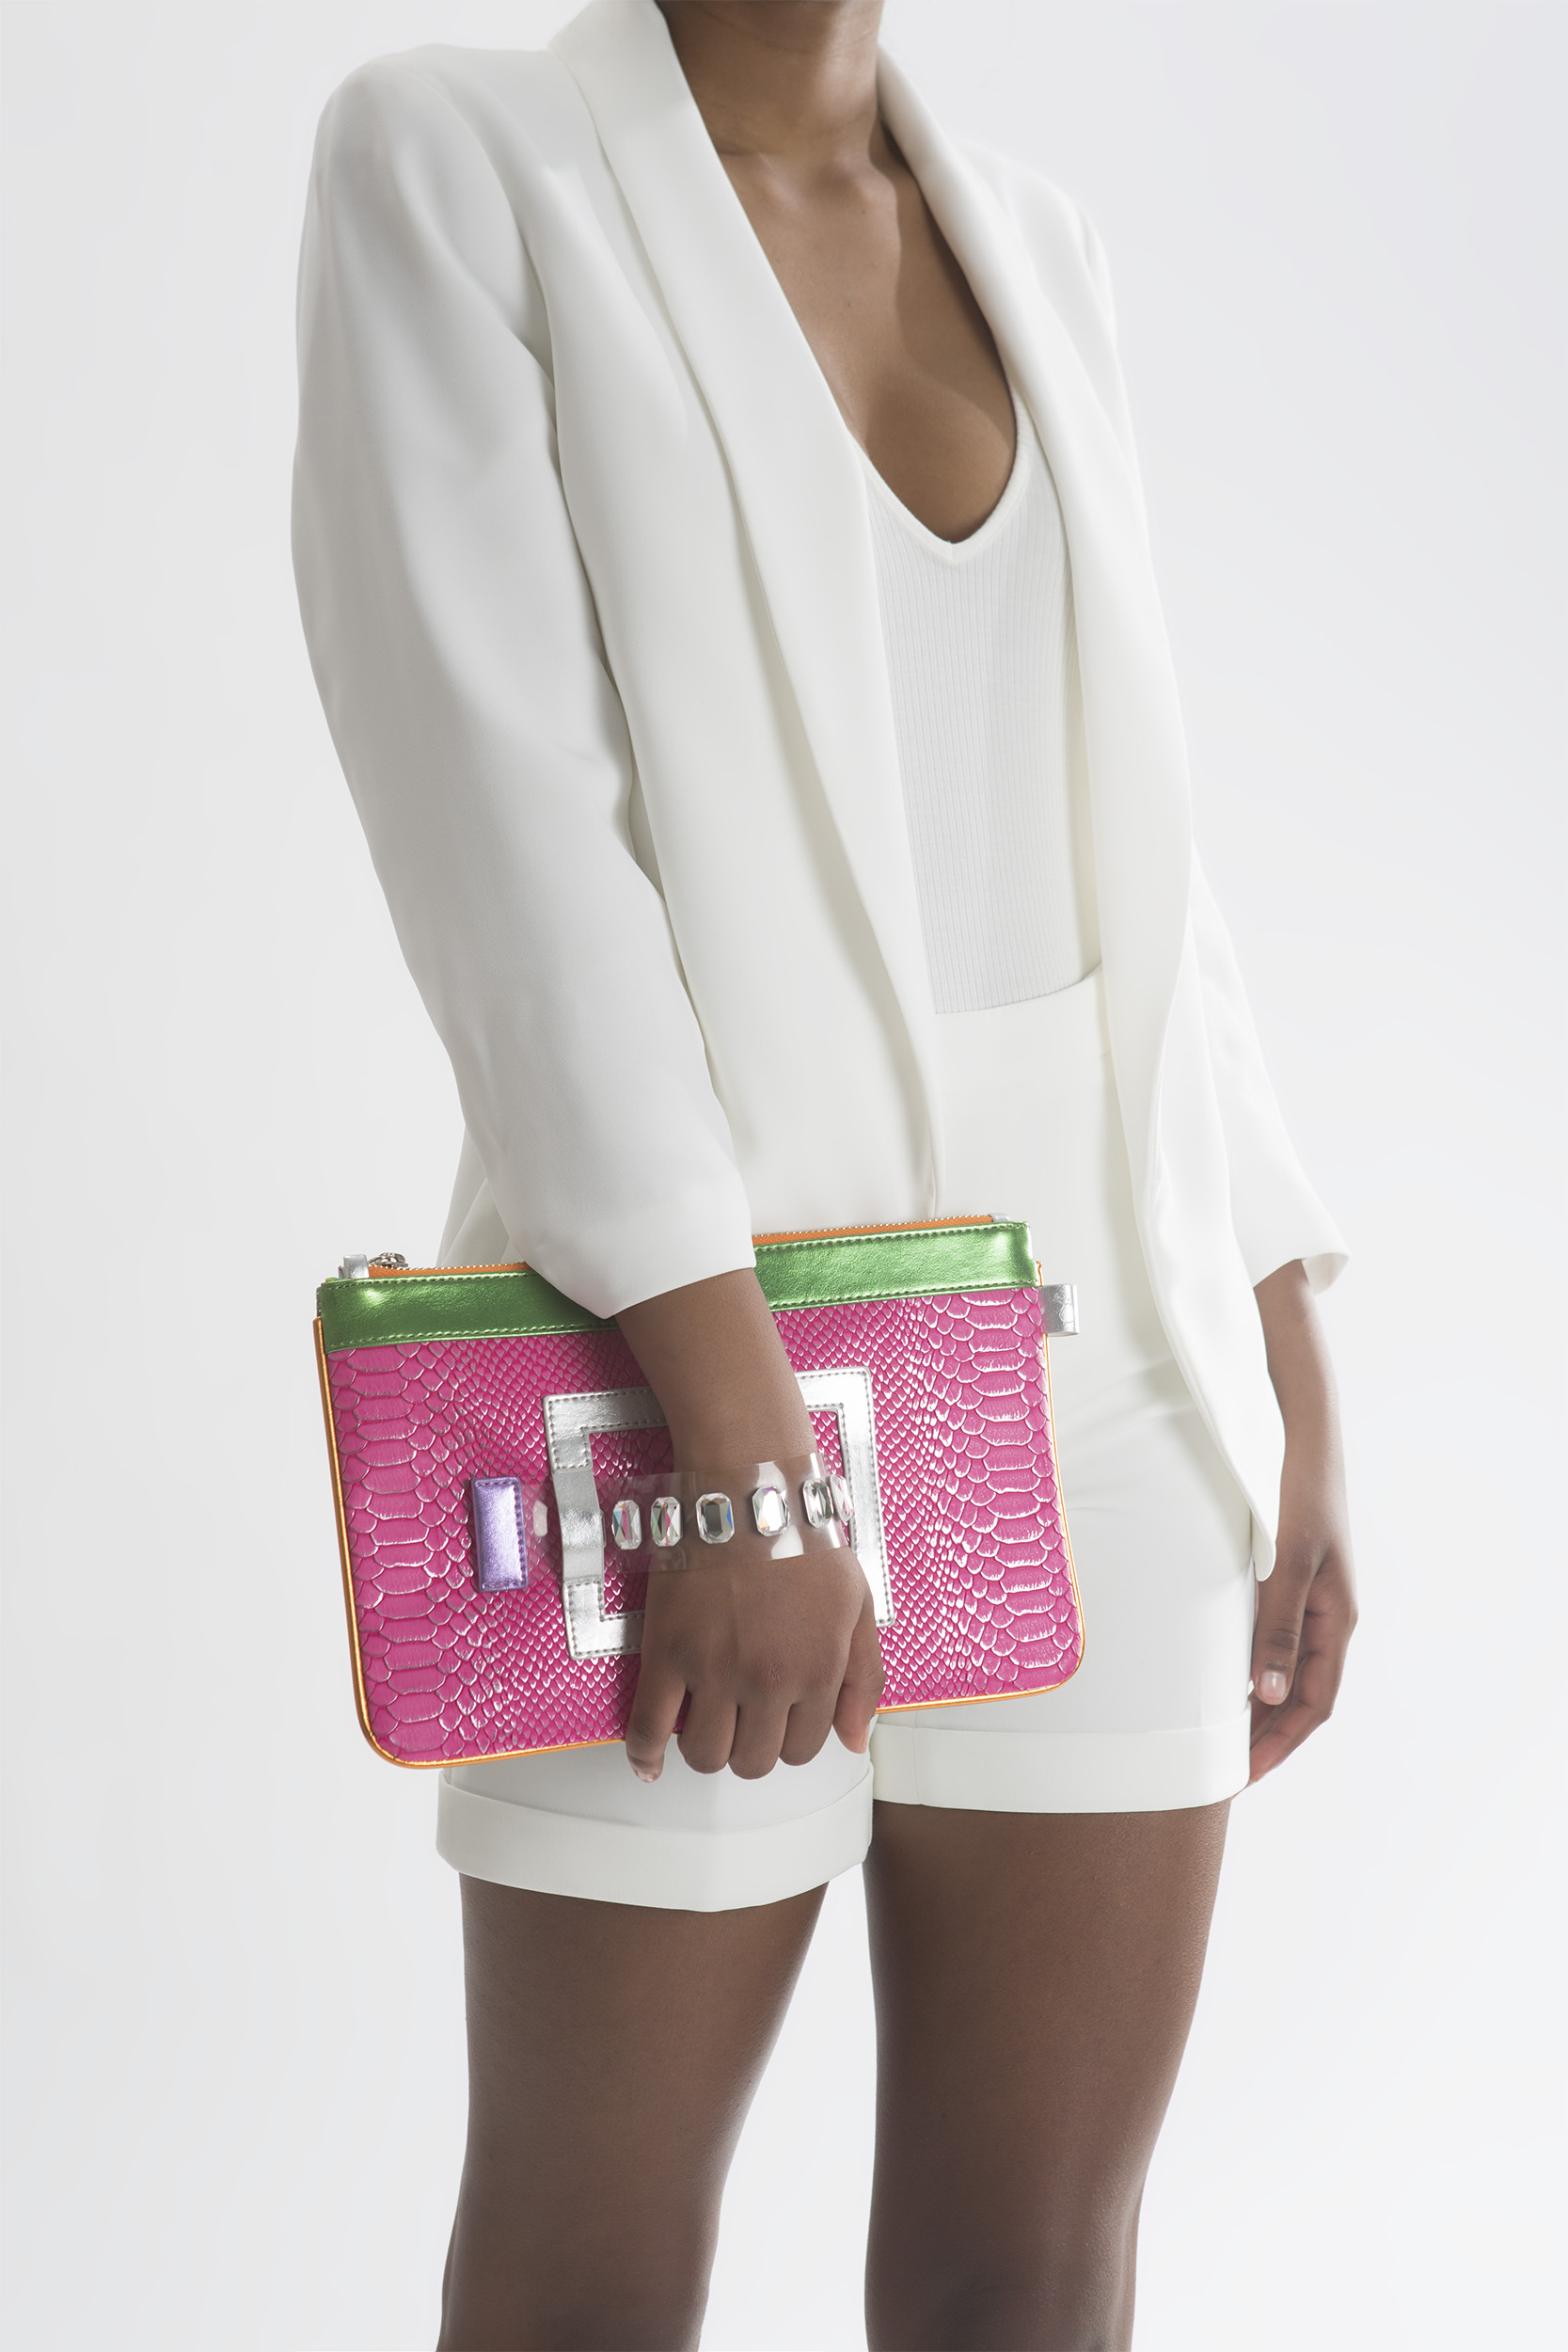 FruitenVeg-GEMINI bag-vegan-imitation-leather-mini-tablet-bracelet-clutch-fuchsia-green-silver-handbag